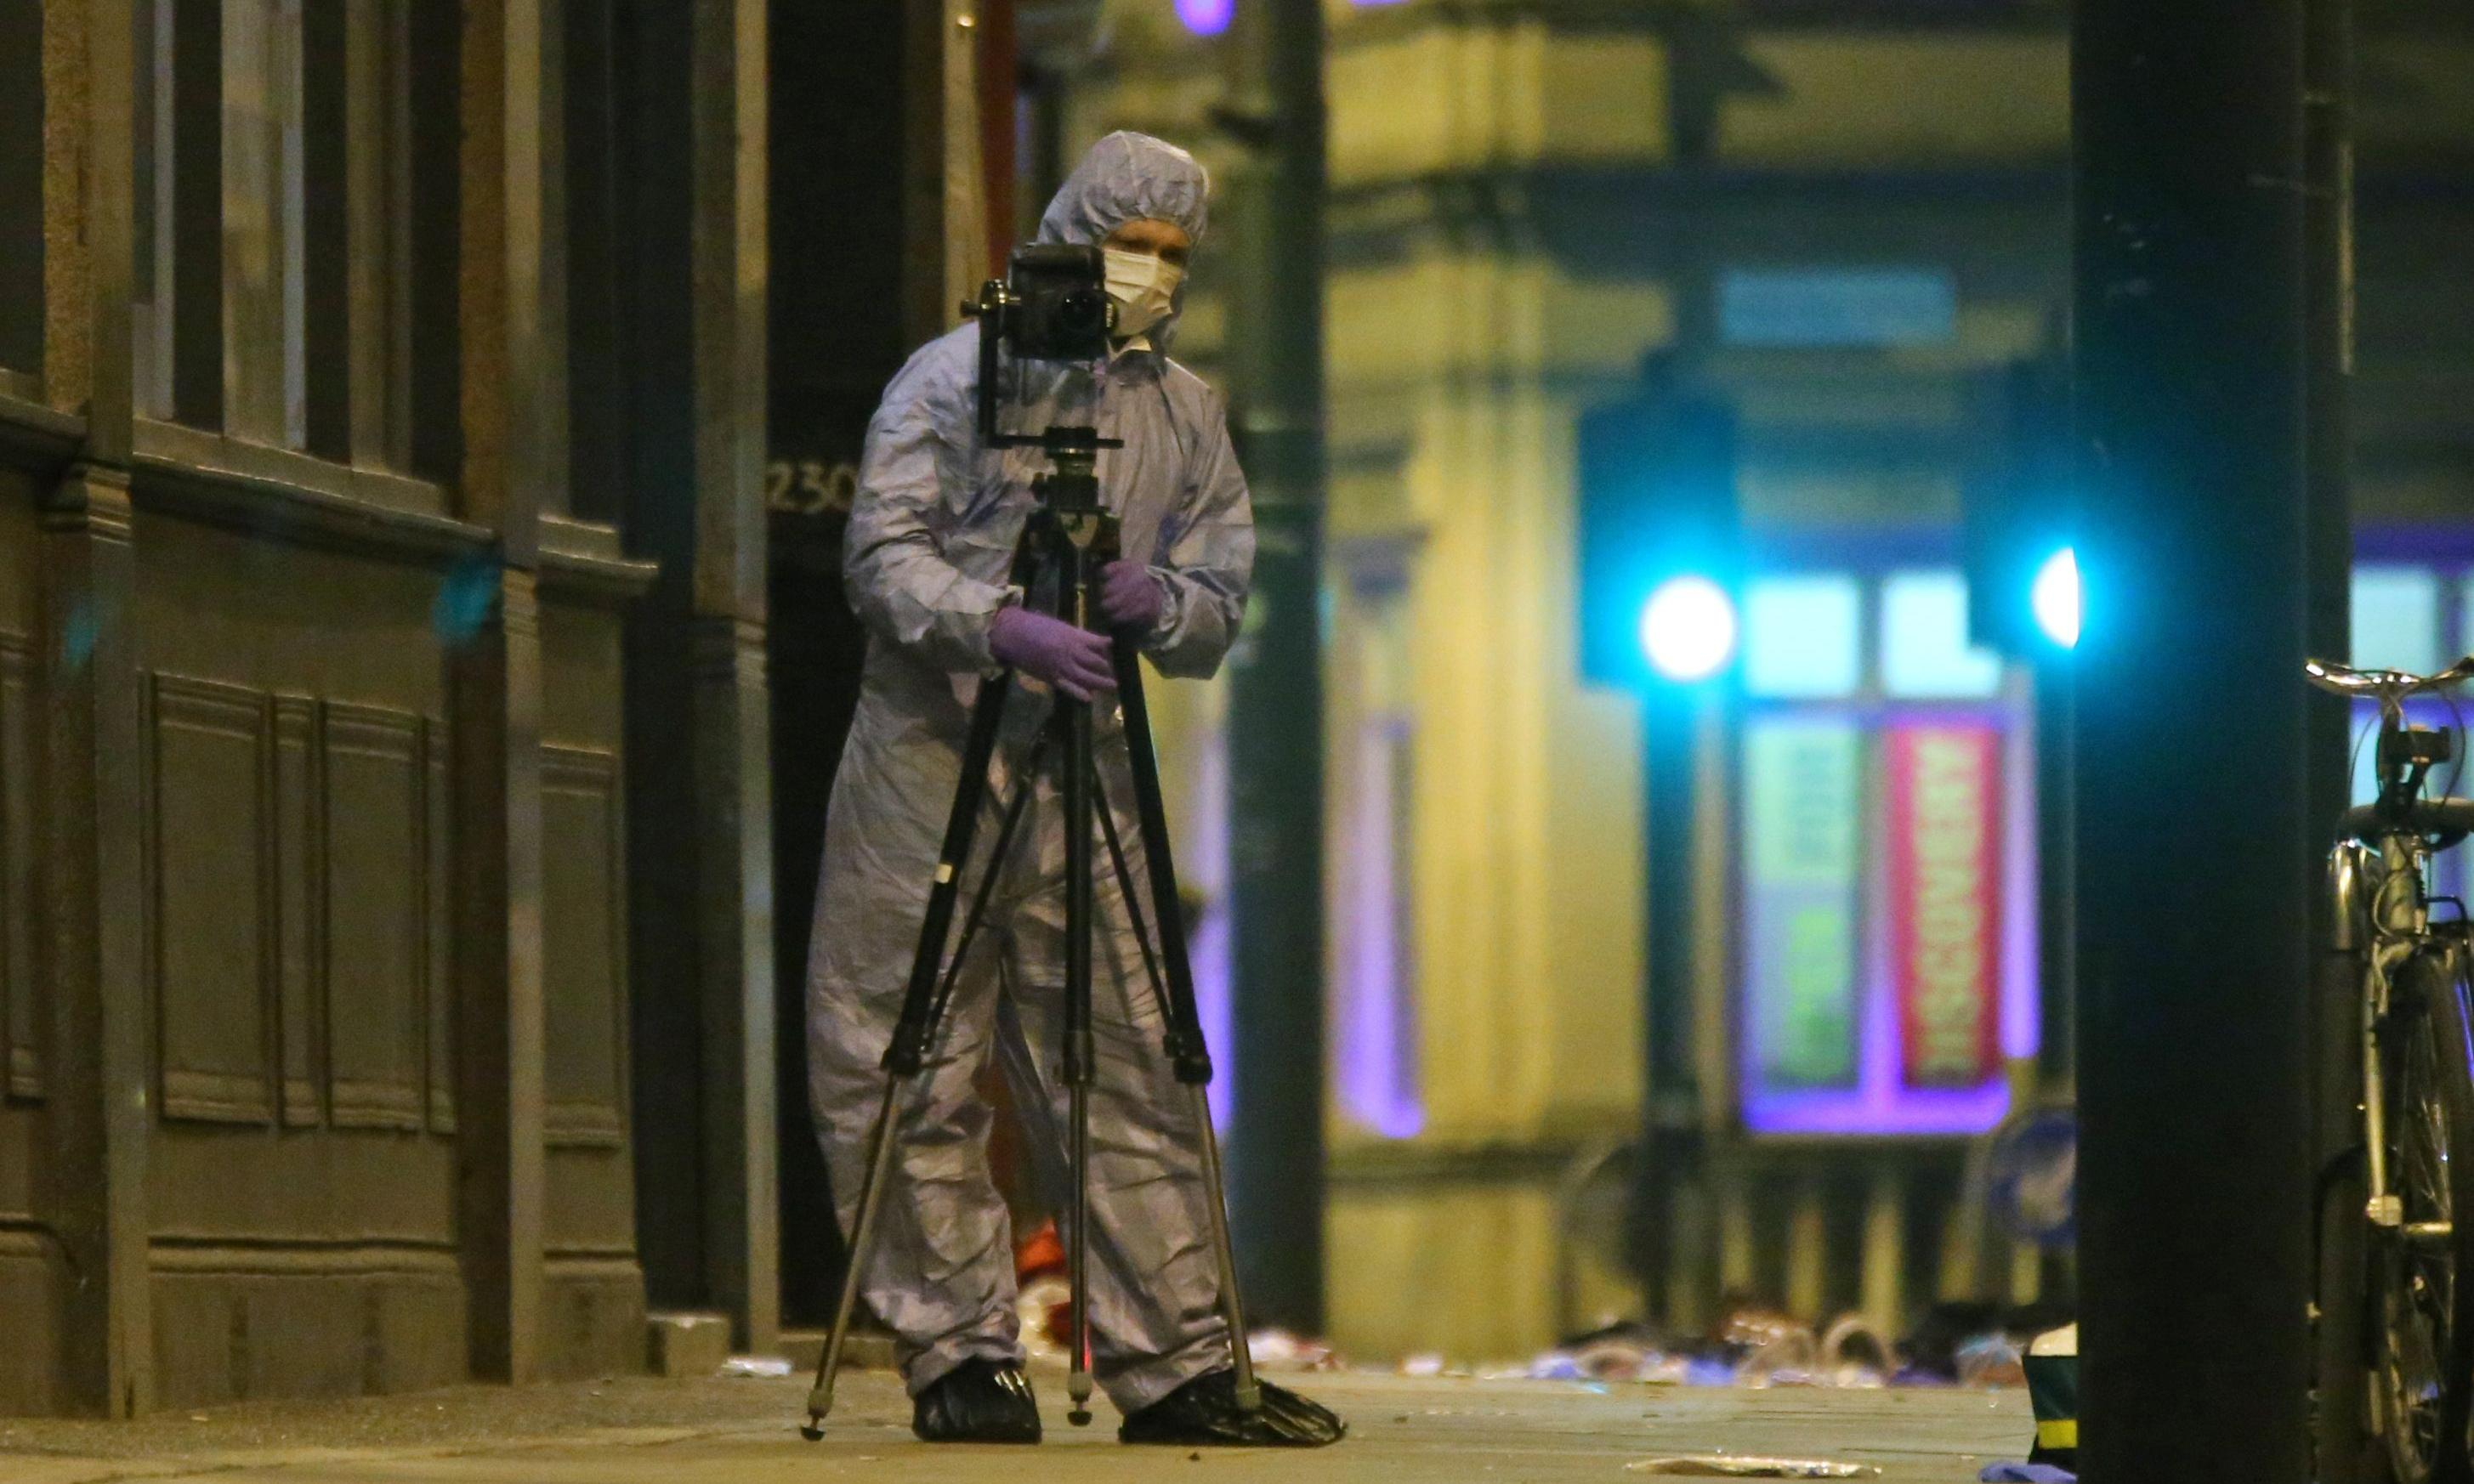 Monday briefing: Deadly fixation of Streatham knife attacker